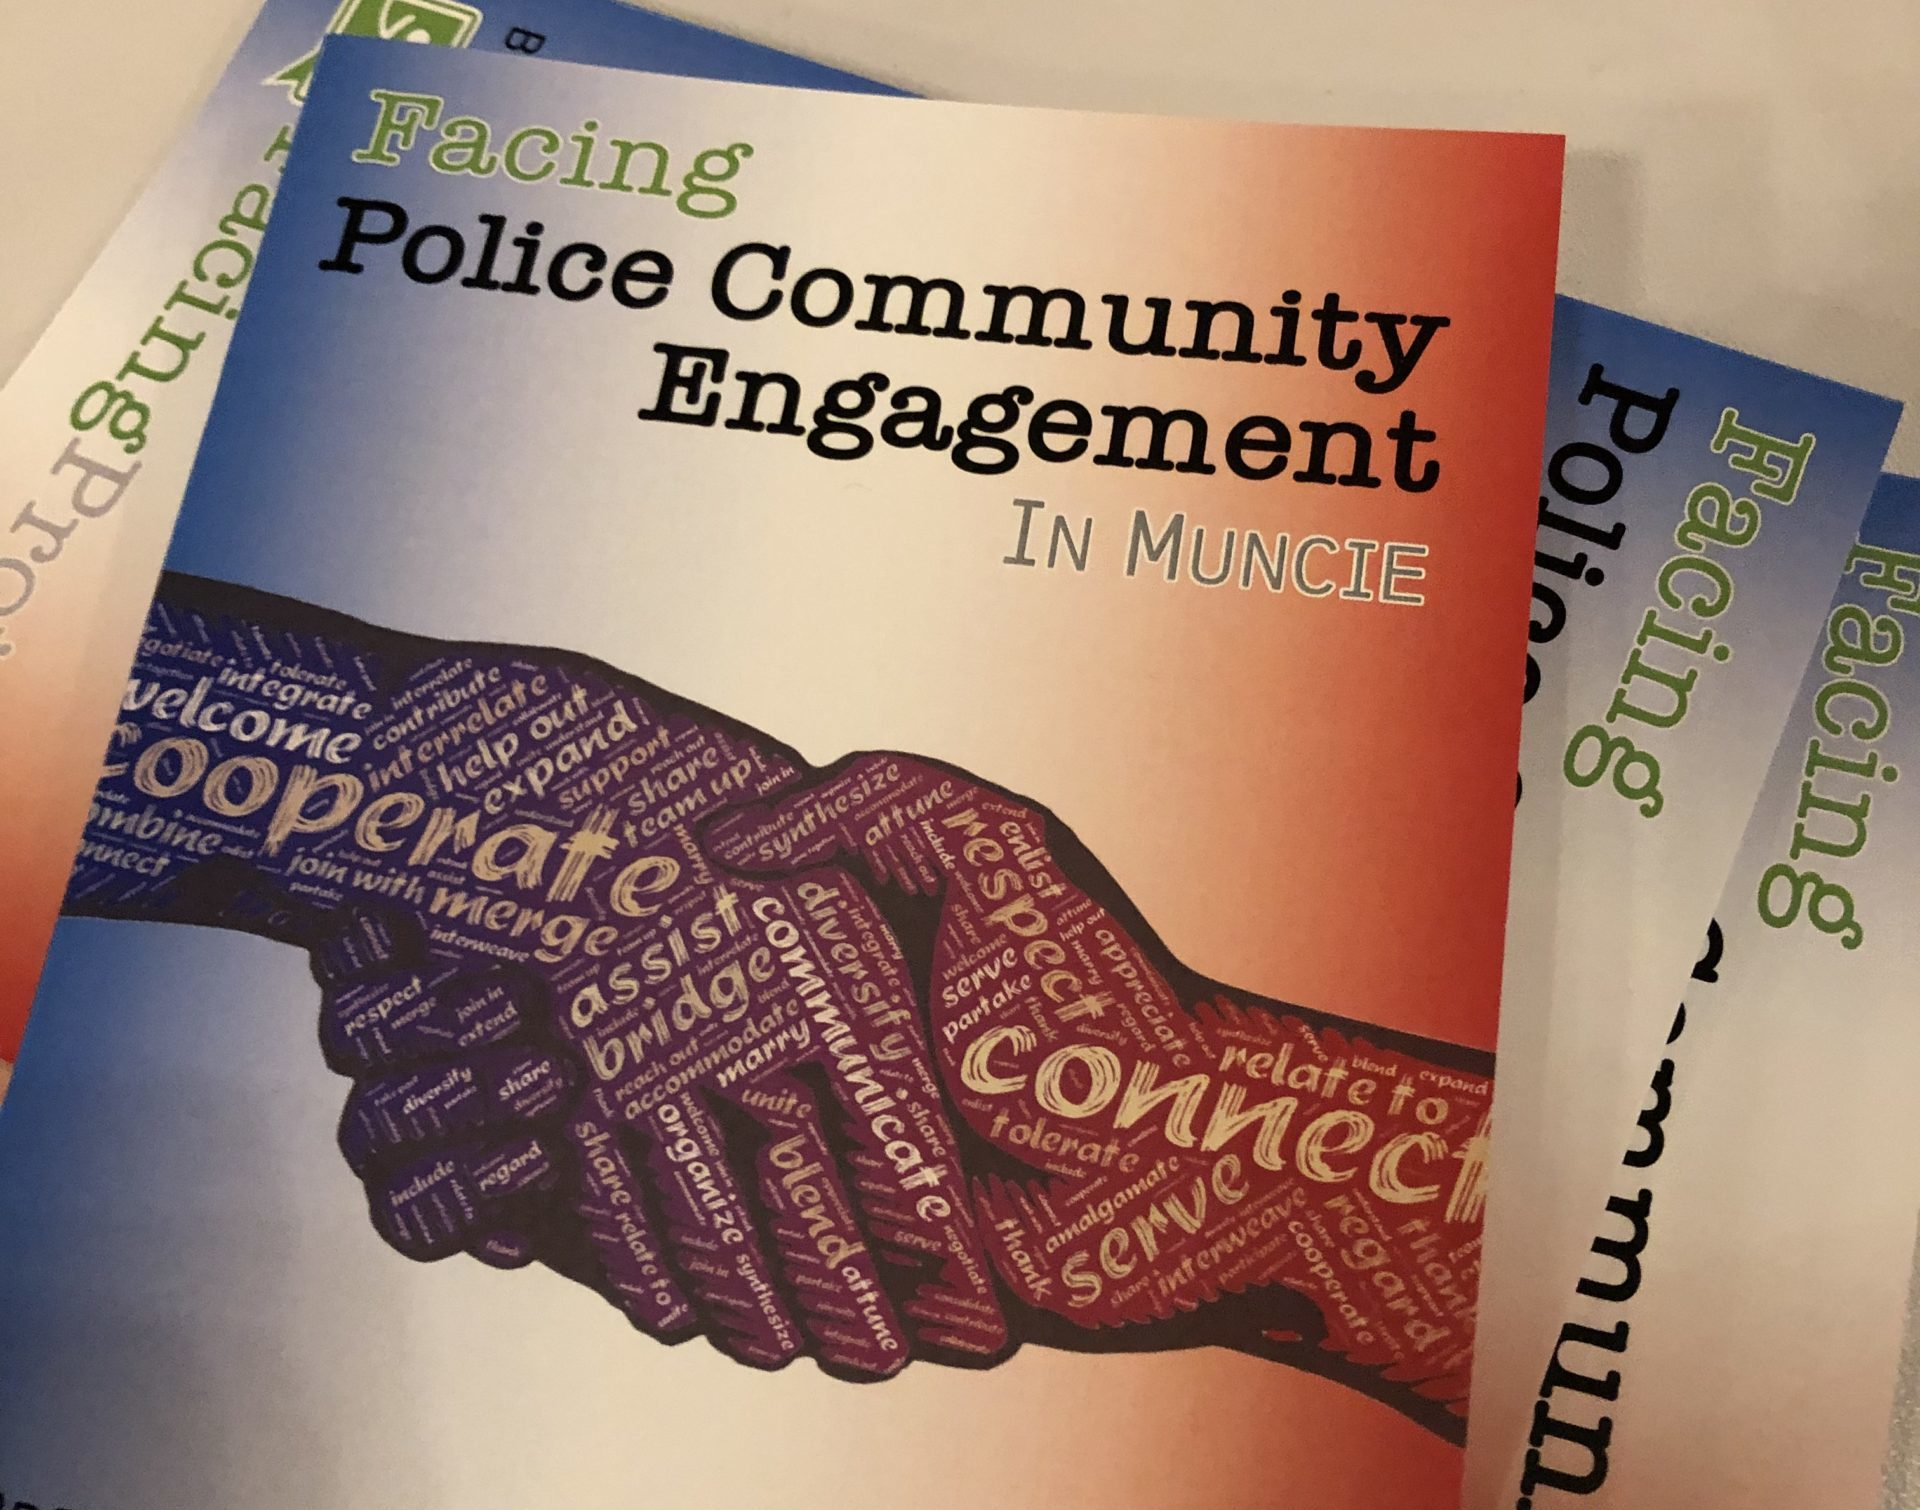 Photo of a booklet for the Facing Police Community Engagement Event in Muncie, Indiana